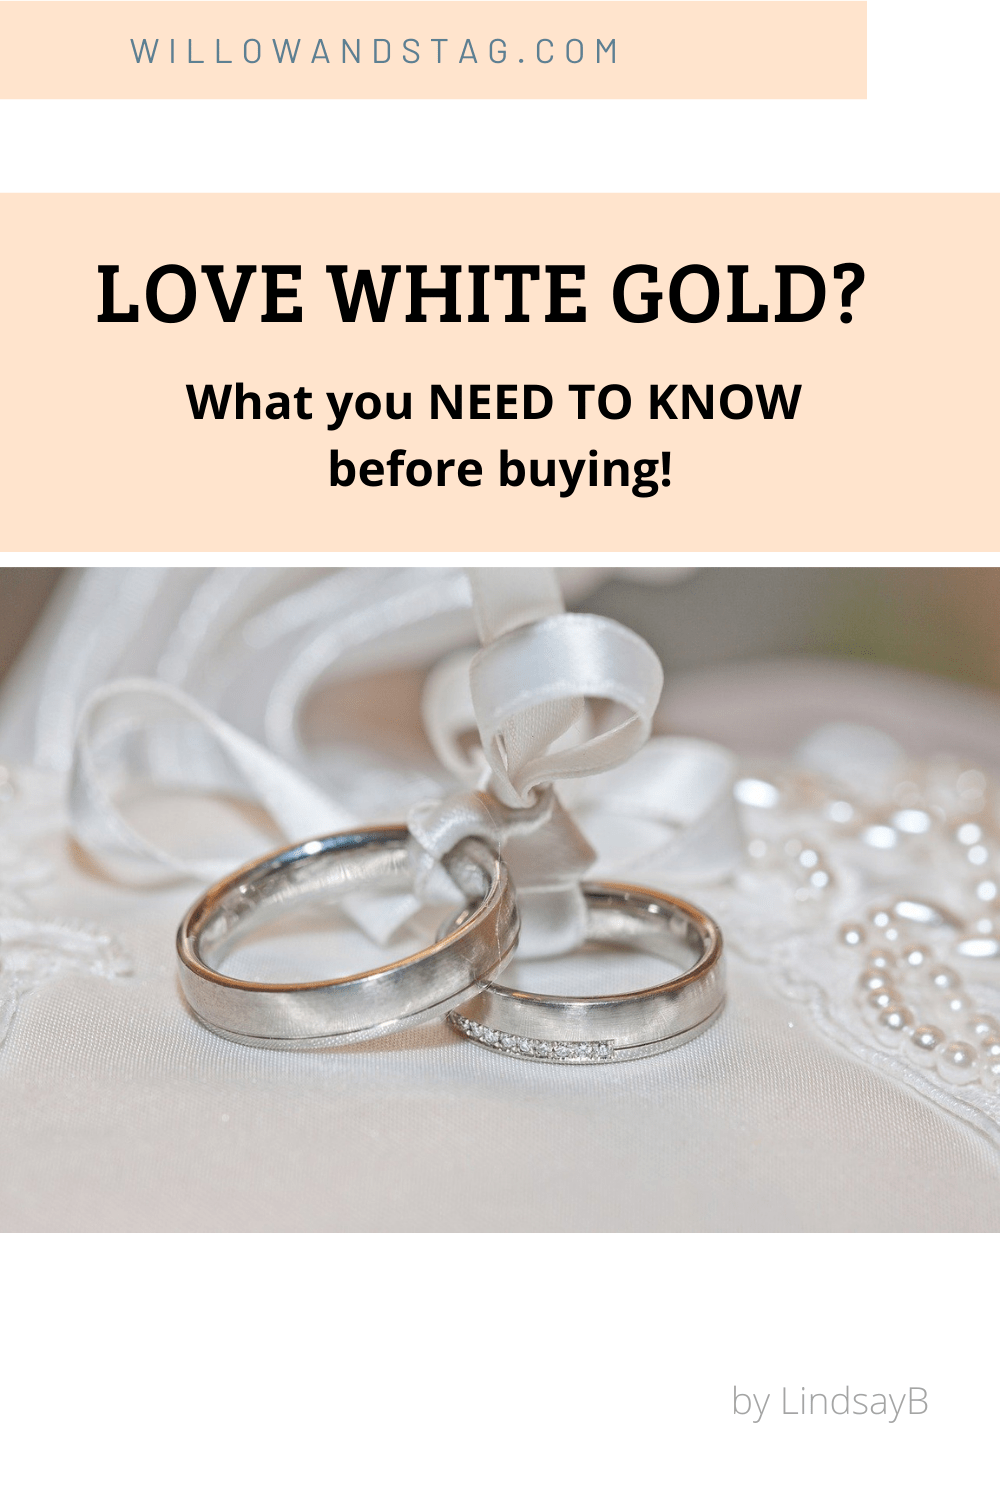 Love WHITE GOLD? What you NEED TO KNOW before buying!